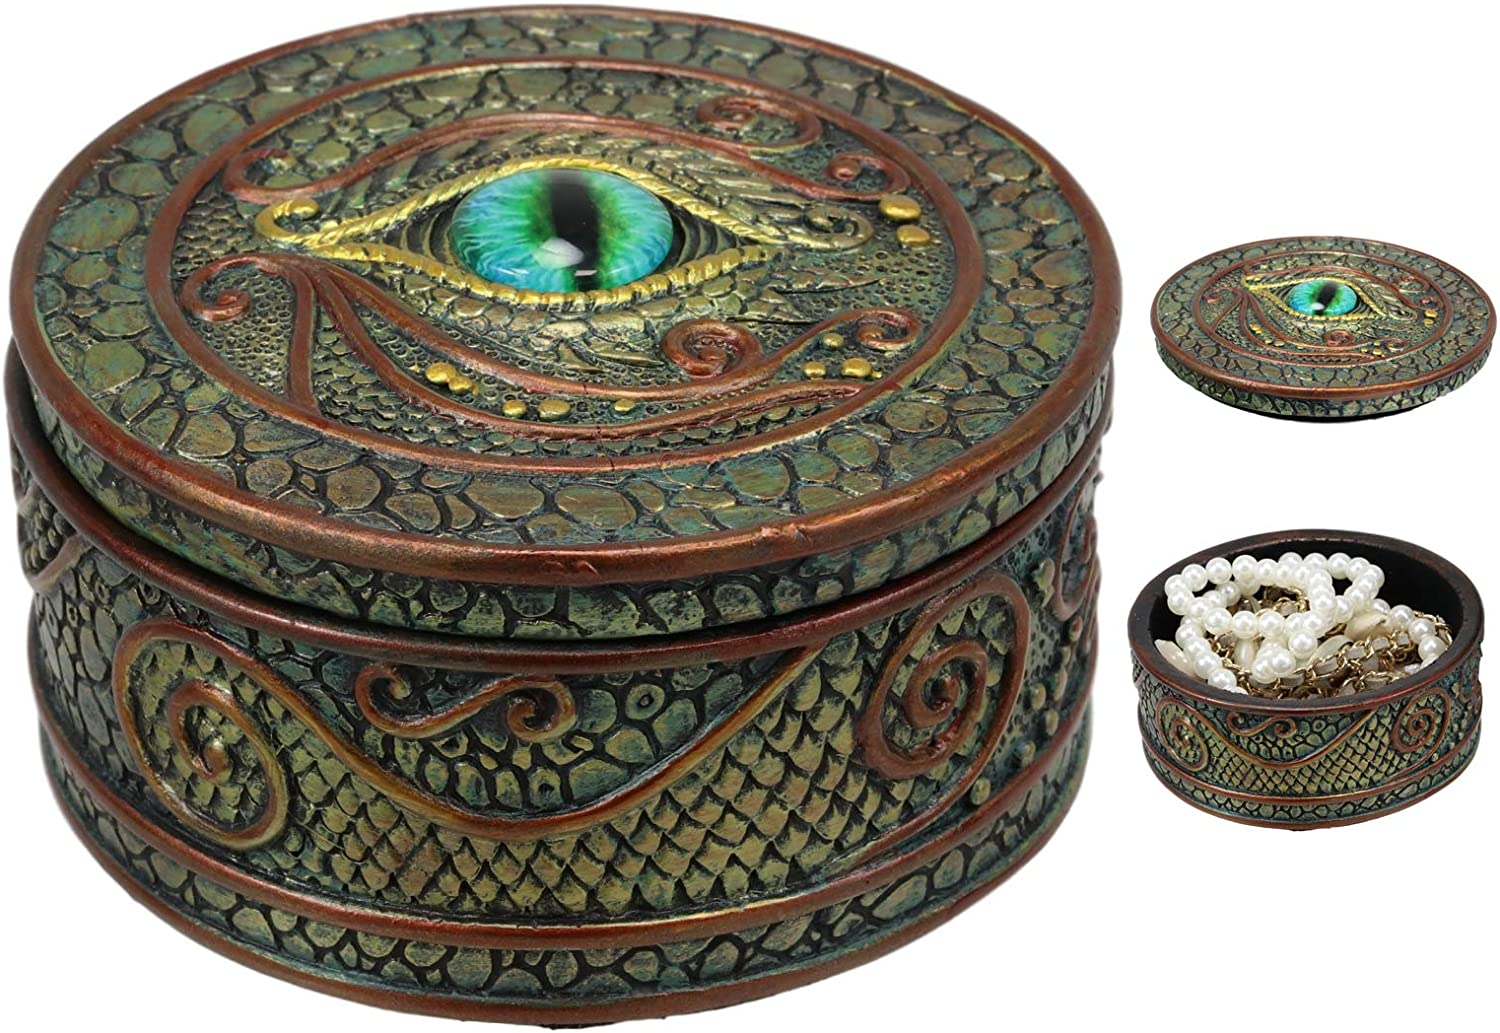 """Ebros Gift Eye Of The Dragon And Scales Decorative Round Trinket Jewelry Box Figurine 4""""Wide Medieval Renaissance Winged Alchemy Magic Fantasy Sauron Dungeons Dragons Decorative Statue"""